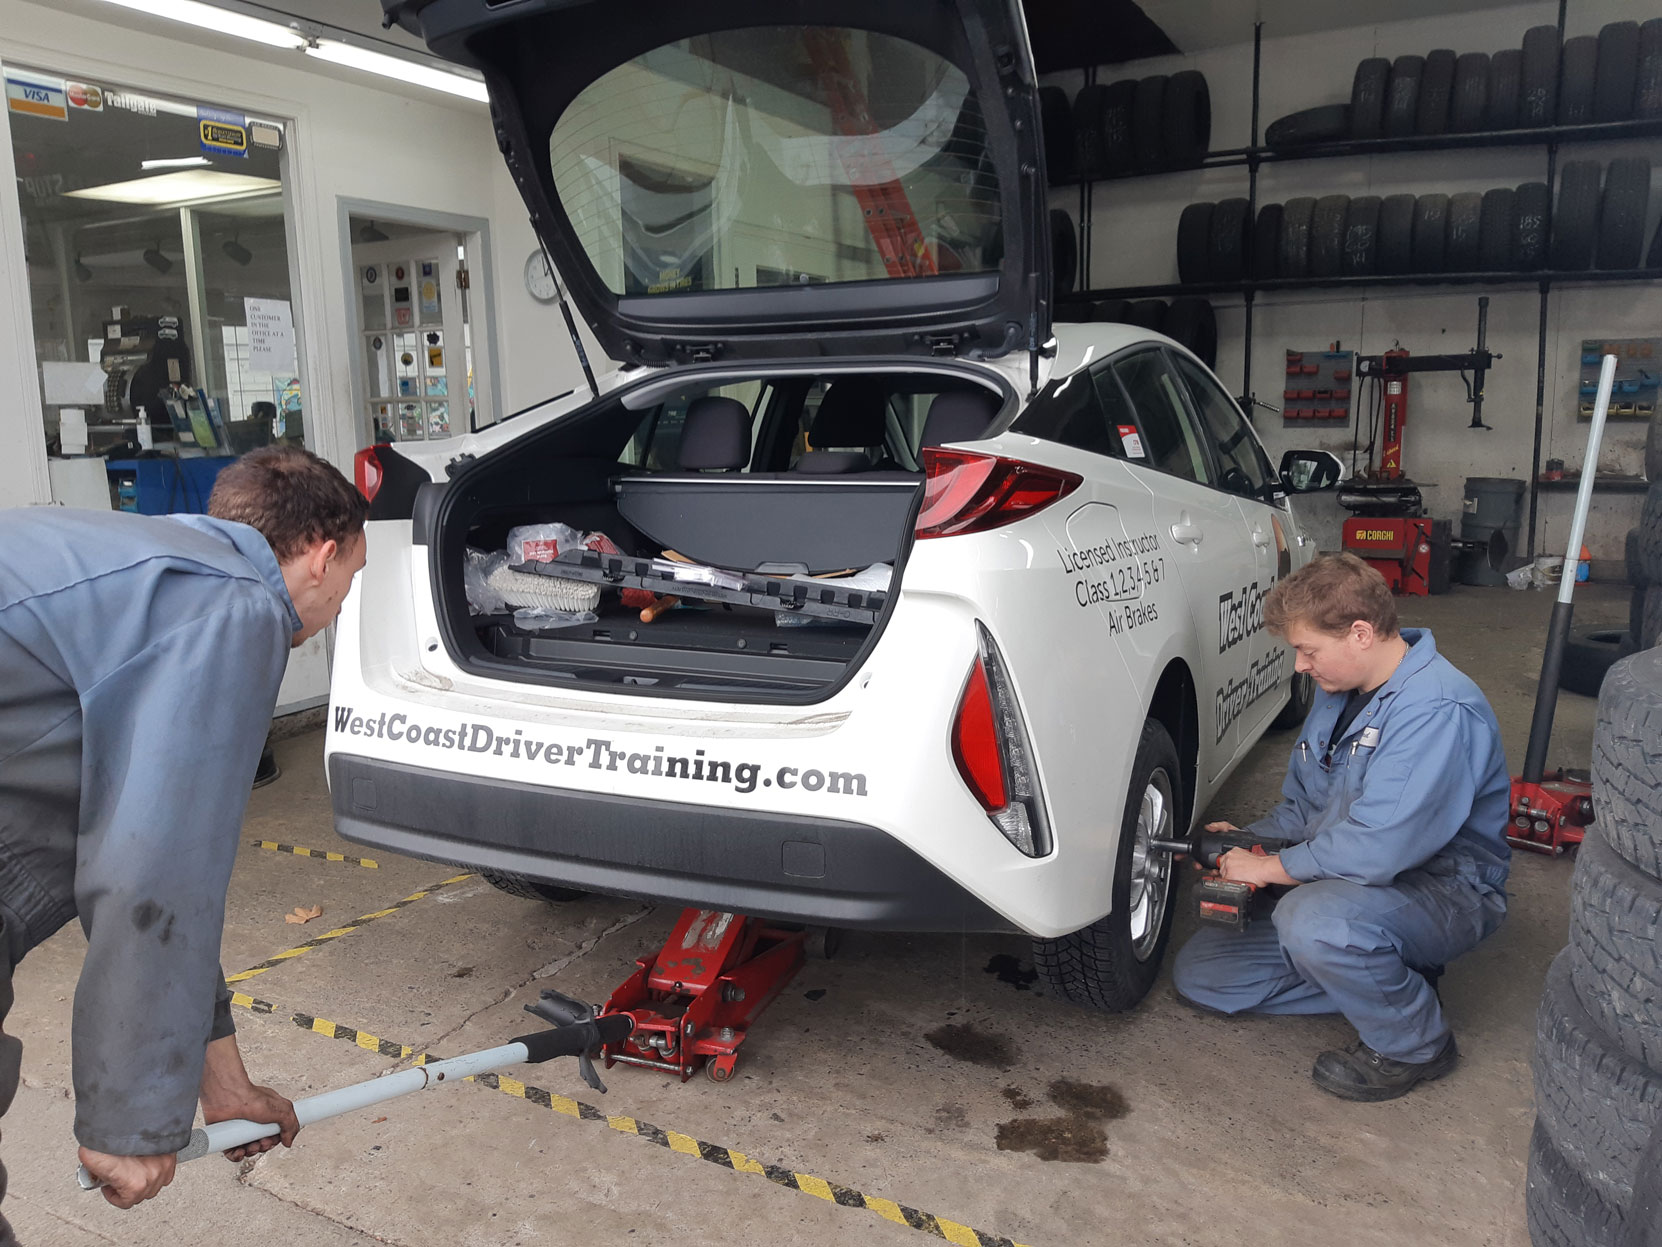 Our 2020 Prius Prime having a new set of Michelin winter tires put on at Joe's Tire Hospital in Duncan, October 2020 (photo: West Coast Driver Training)